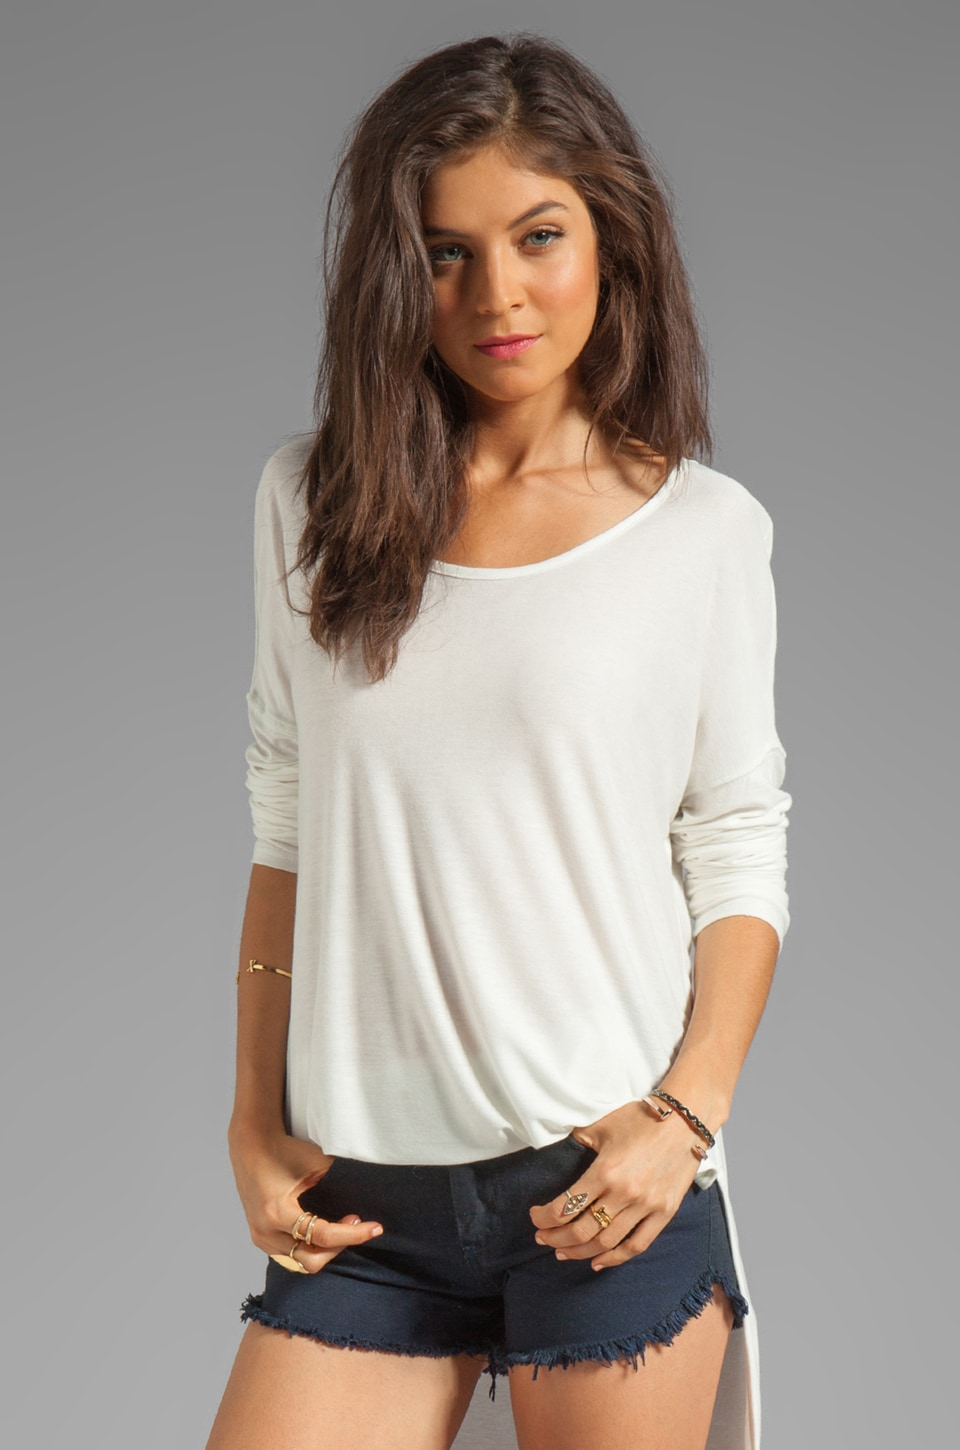 Free People Rain Drop Tee in White